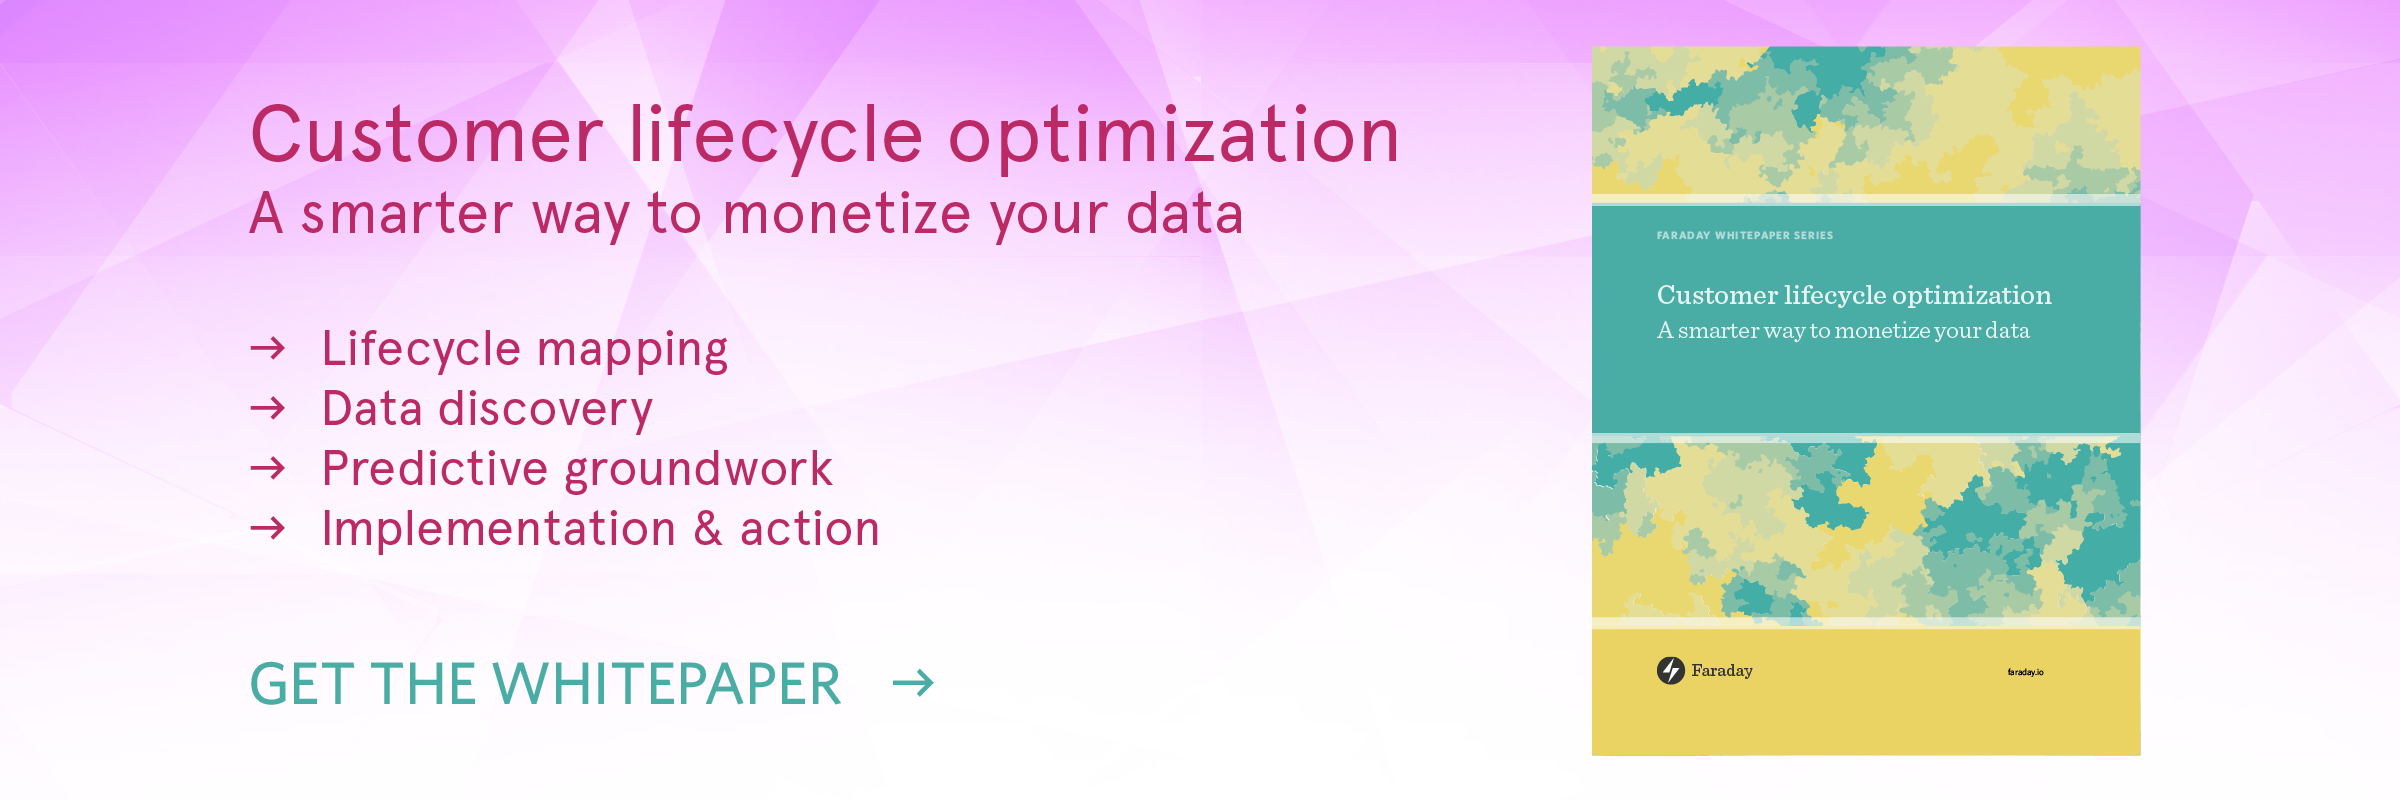 Customer lifecycle optimization whitepaper